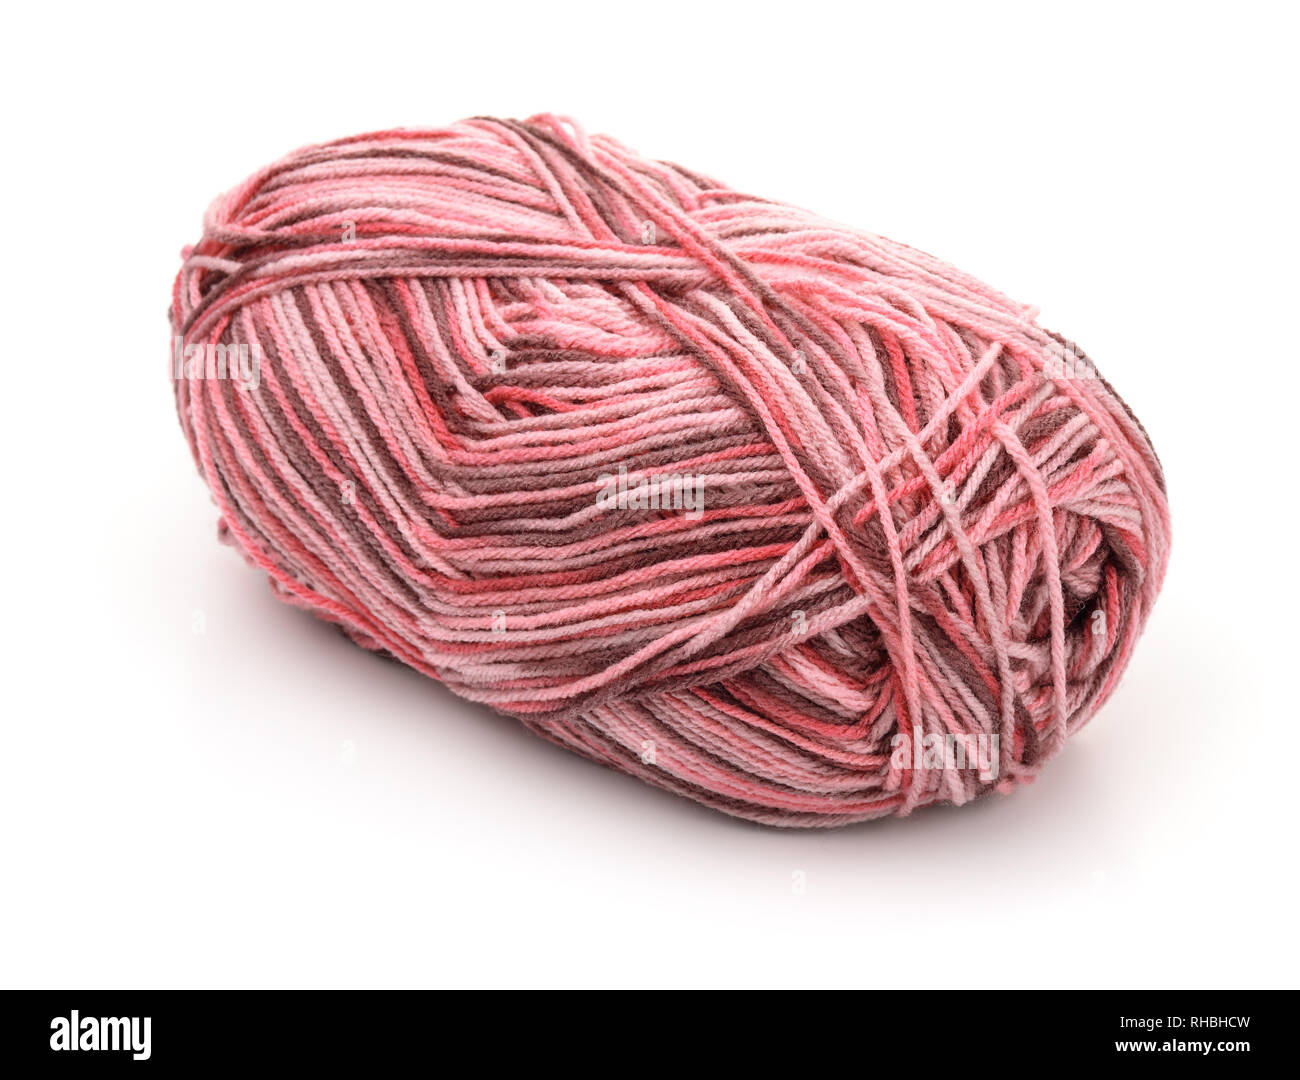 Skein of multicolor knitting yarn isolated on white - Stock Image